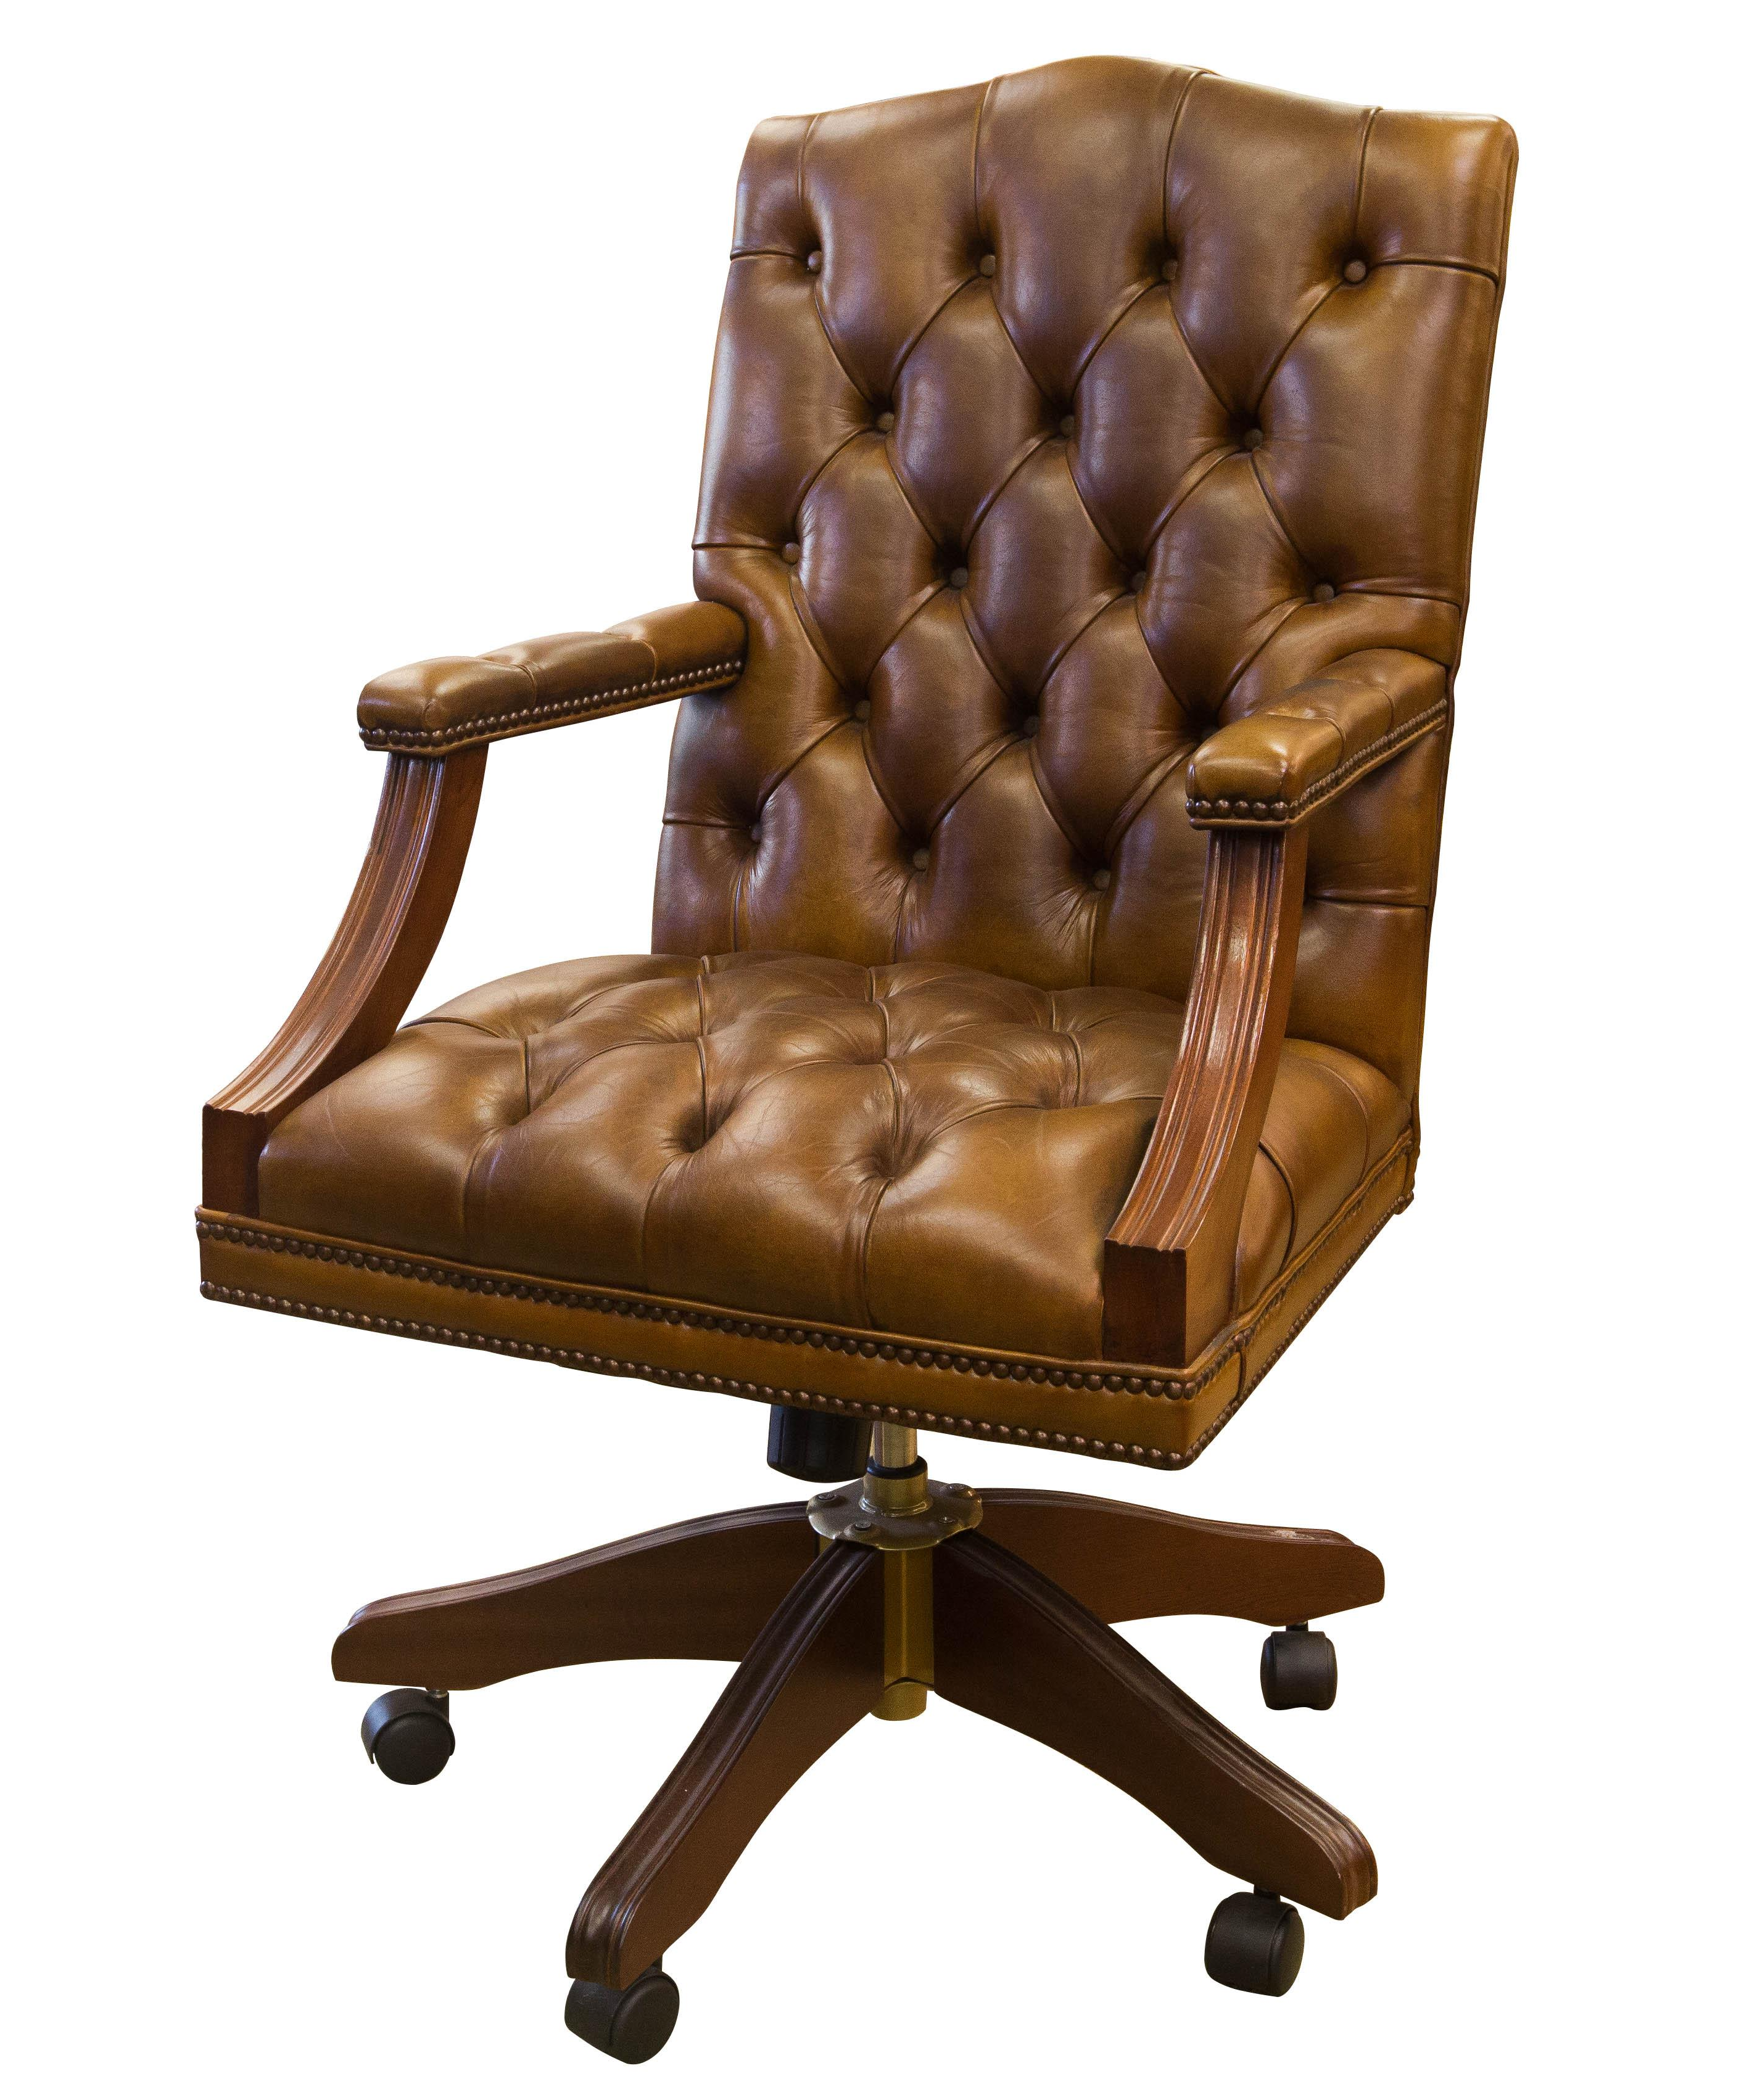 English Gainsborough Brown Leather fice Chair